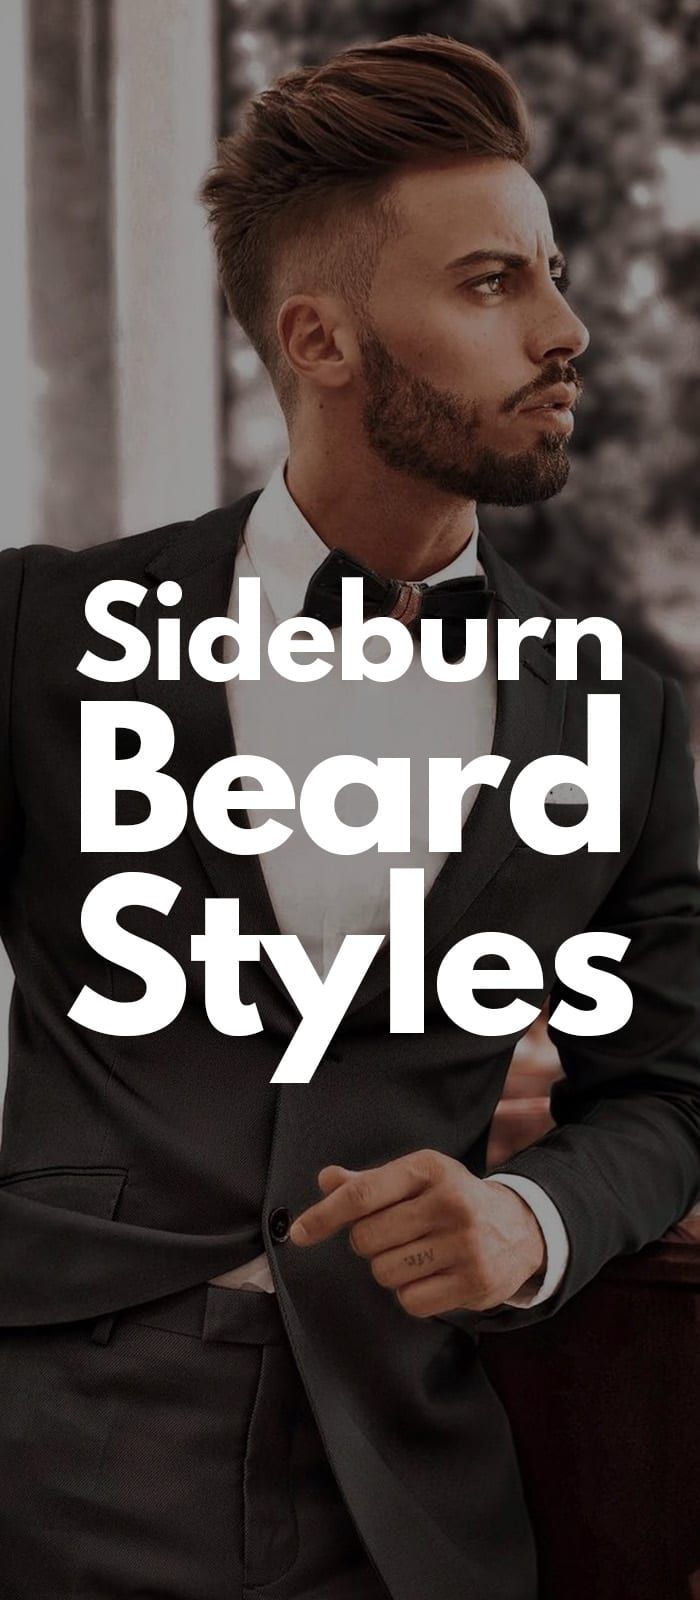 Sideburns For Beard.